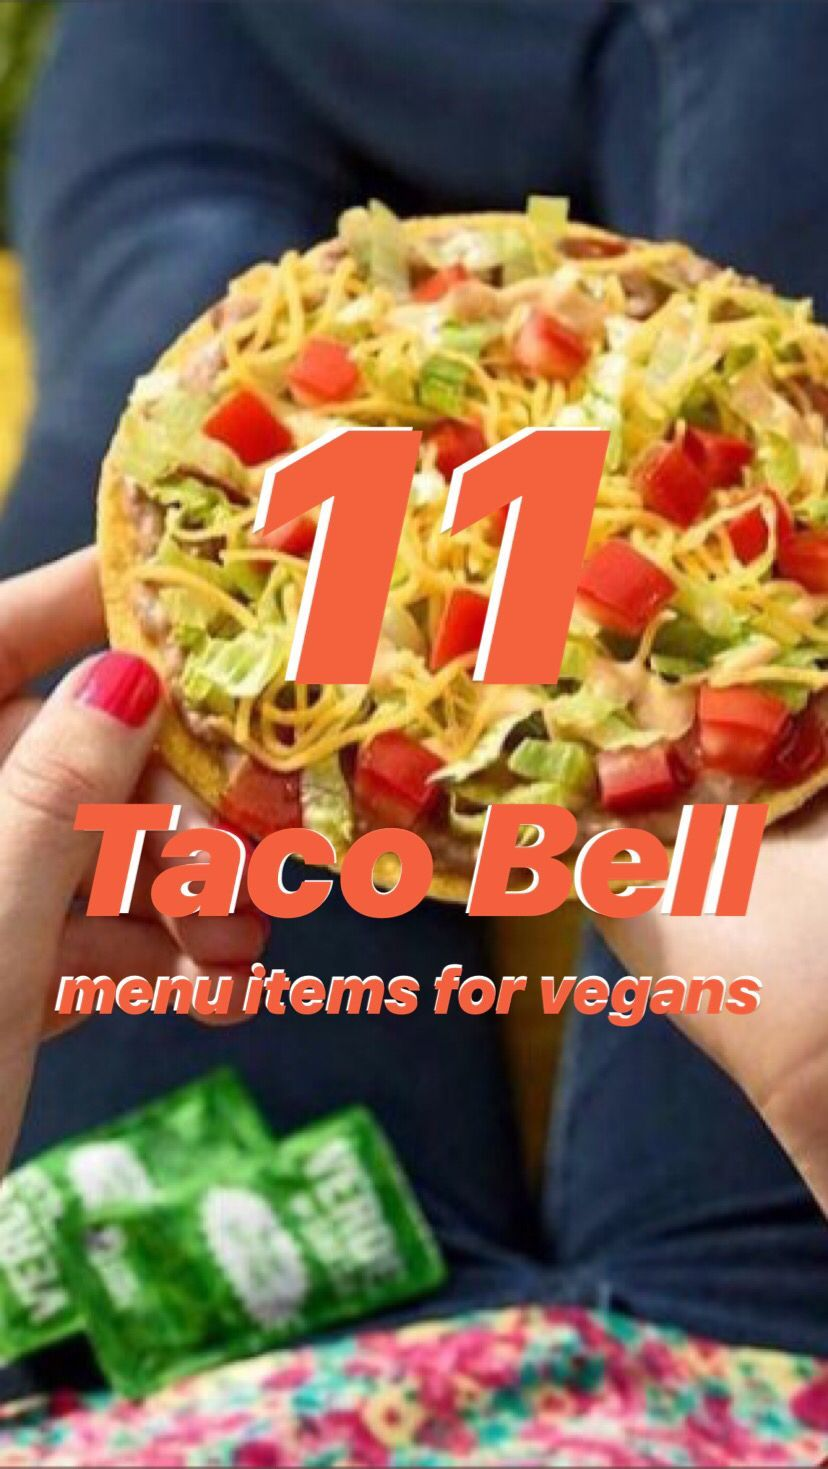 The 11 Best Taco Bell Menu Items For Vegans Vegan Restaurant Options Vegan Fast Food Vegan Fast Food Options